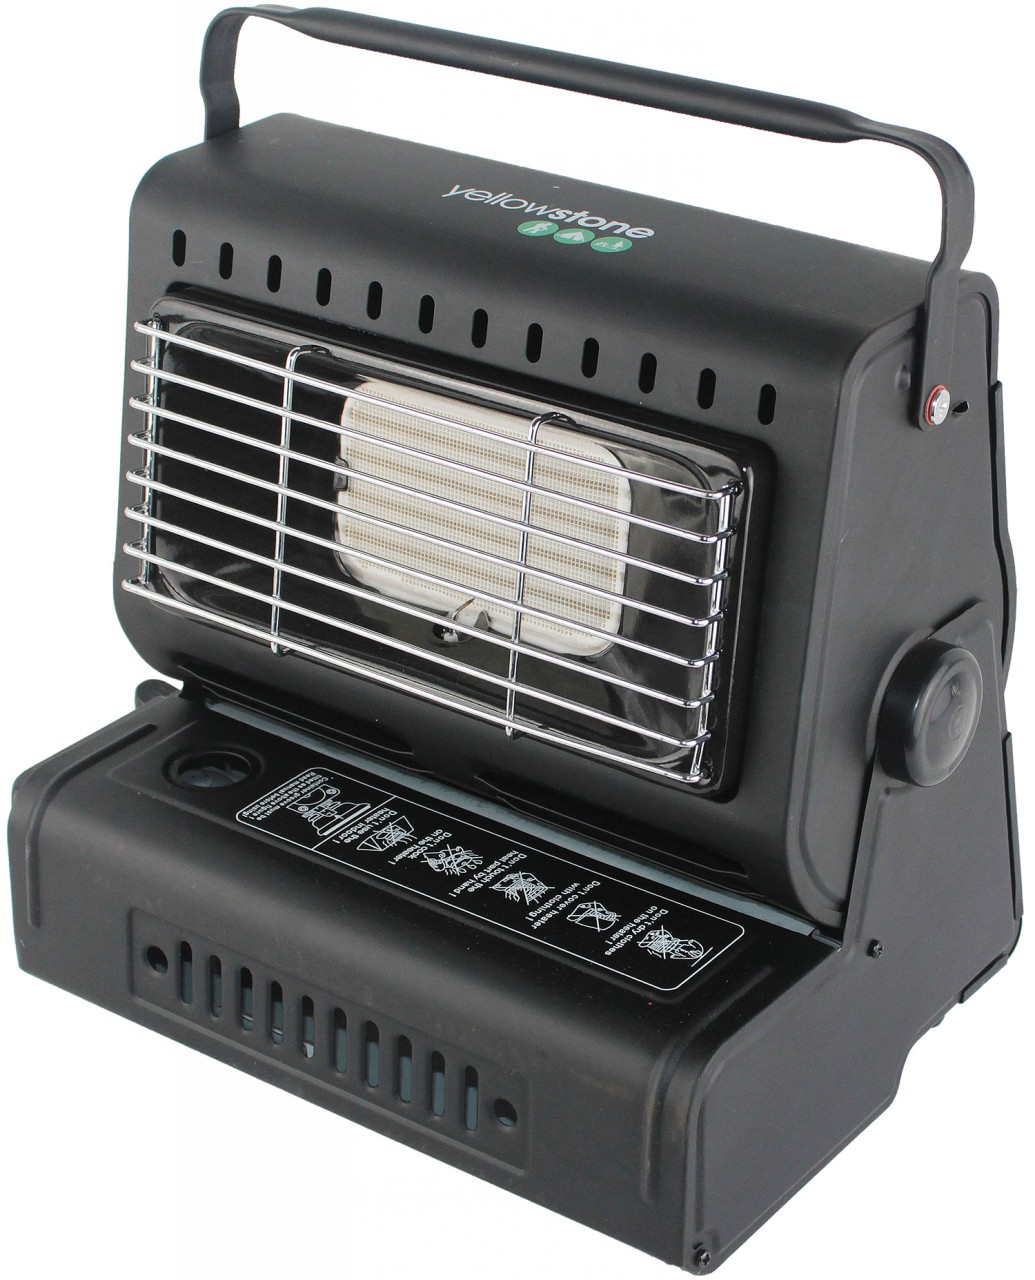 Steel Portable Gas Heater Black Efficient Ceramic